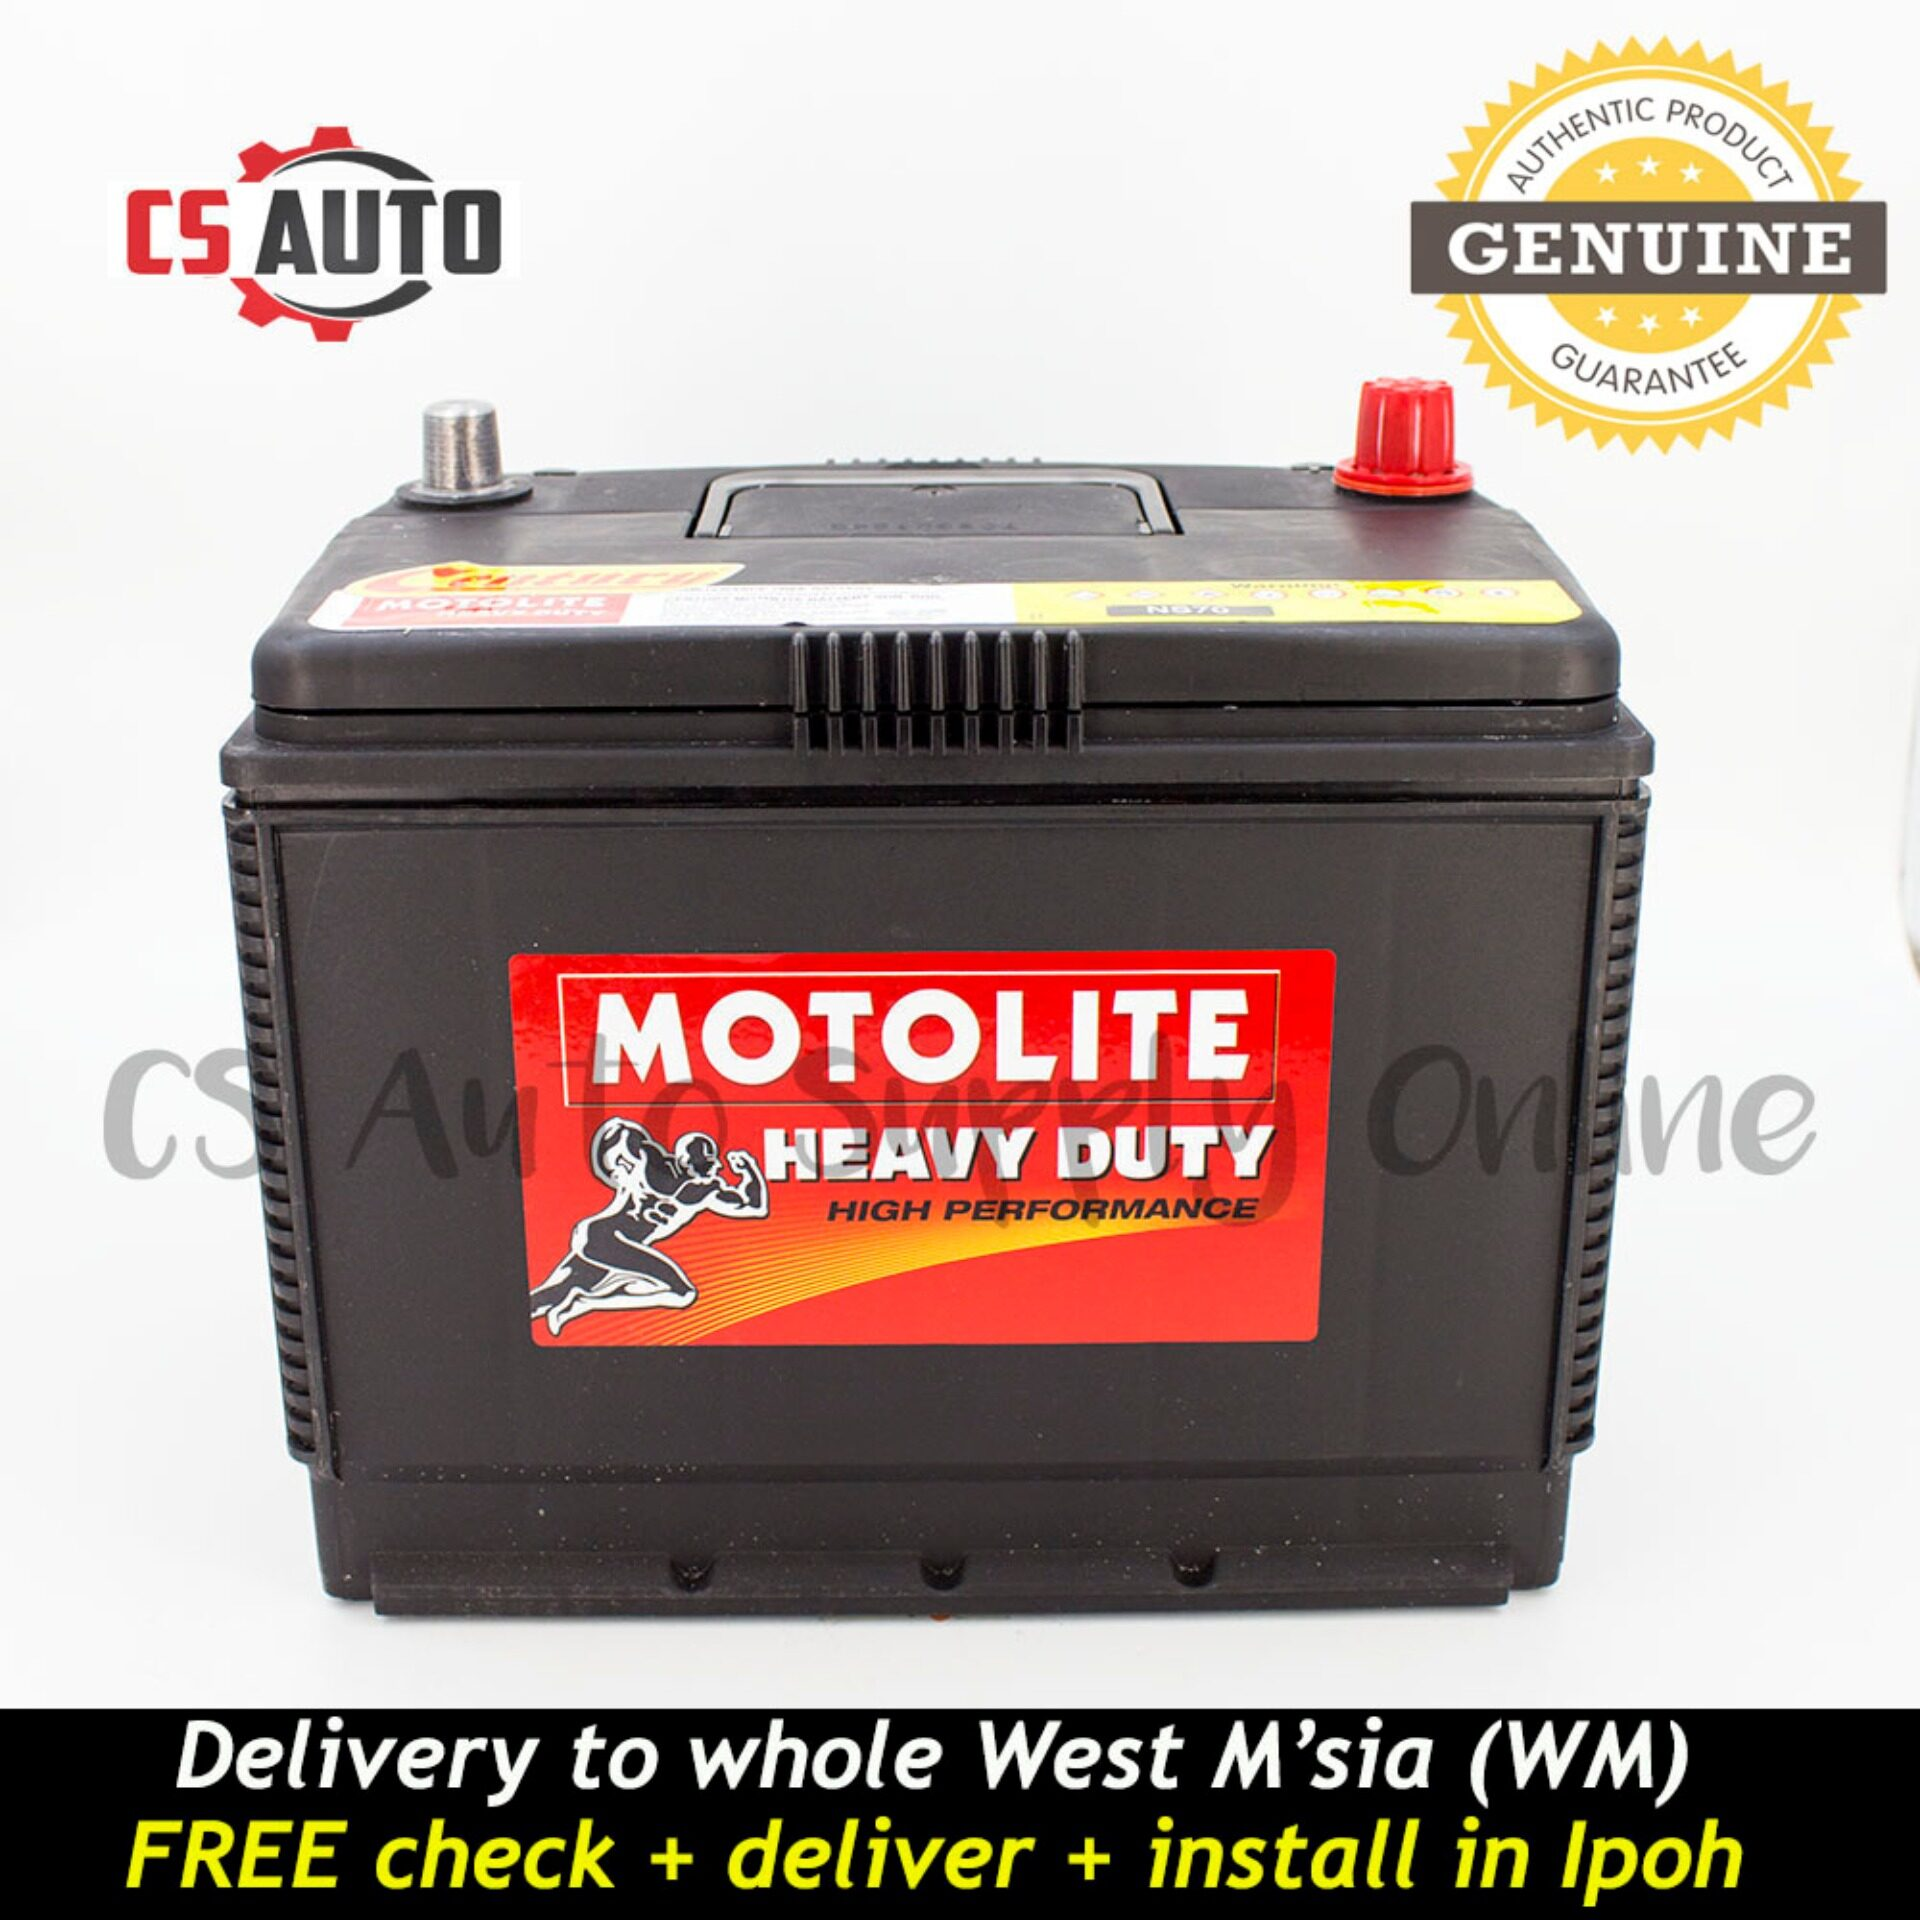 Century NS70R NS70 Motolite Car Battery MF for Proton Wira, Perdana and Toyota Unser, Fortuner Ipoh (100% Original)